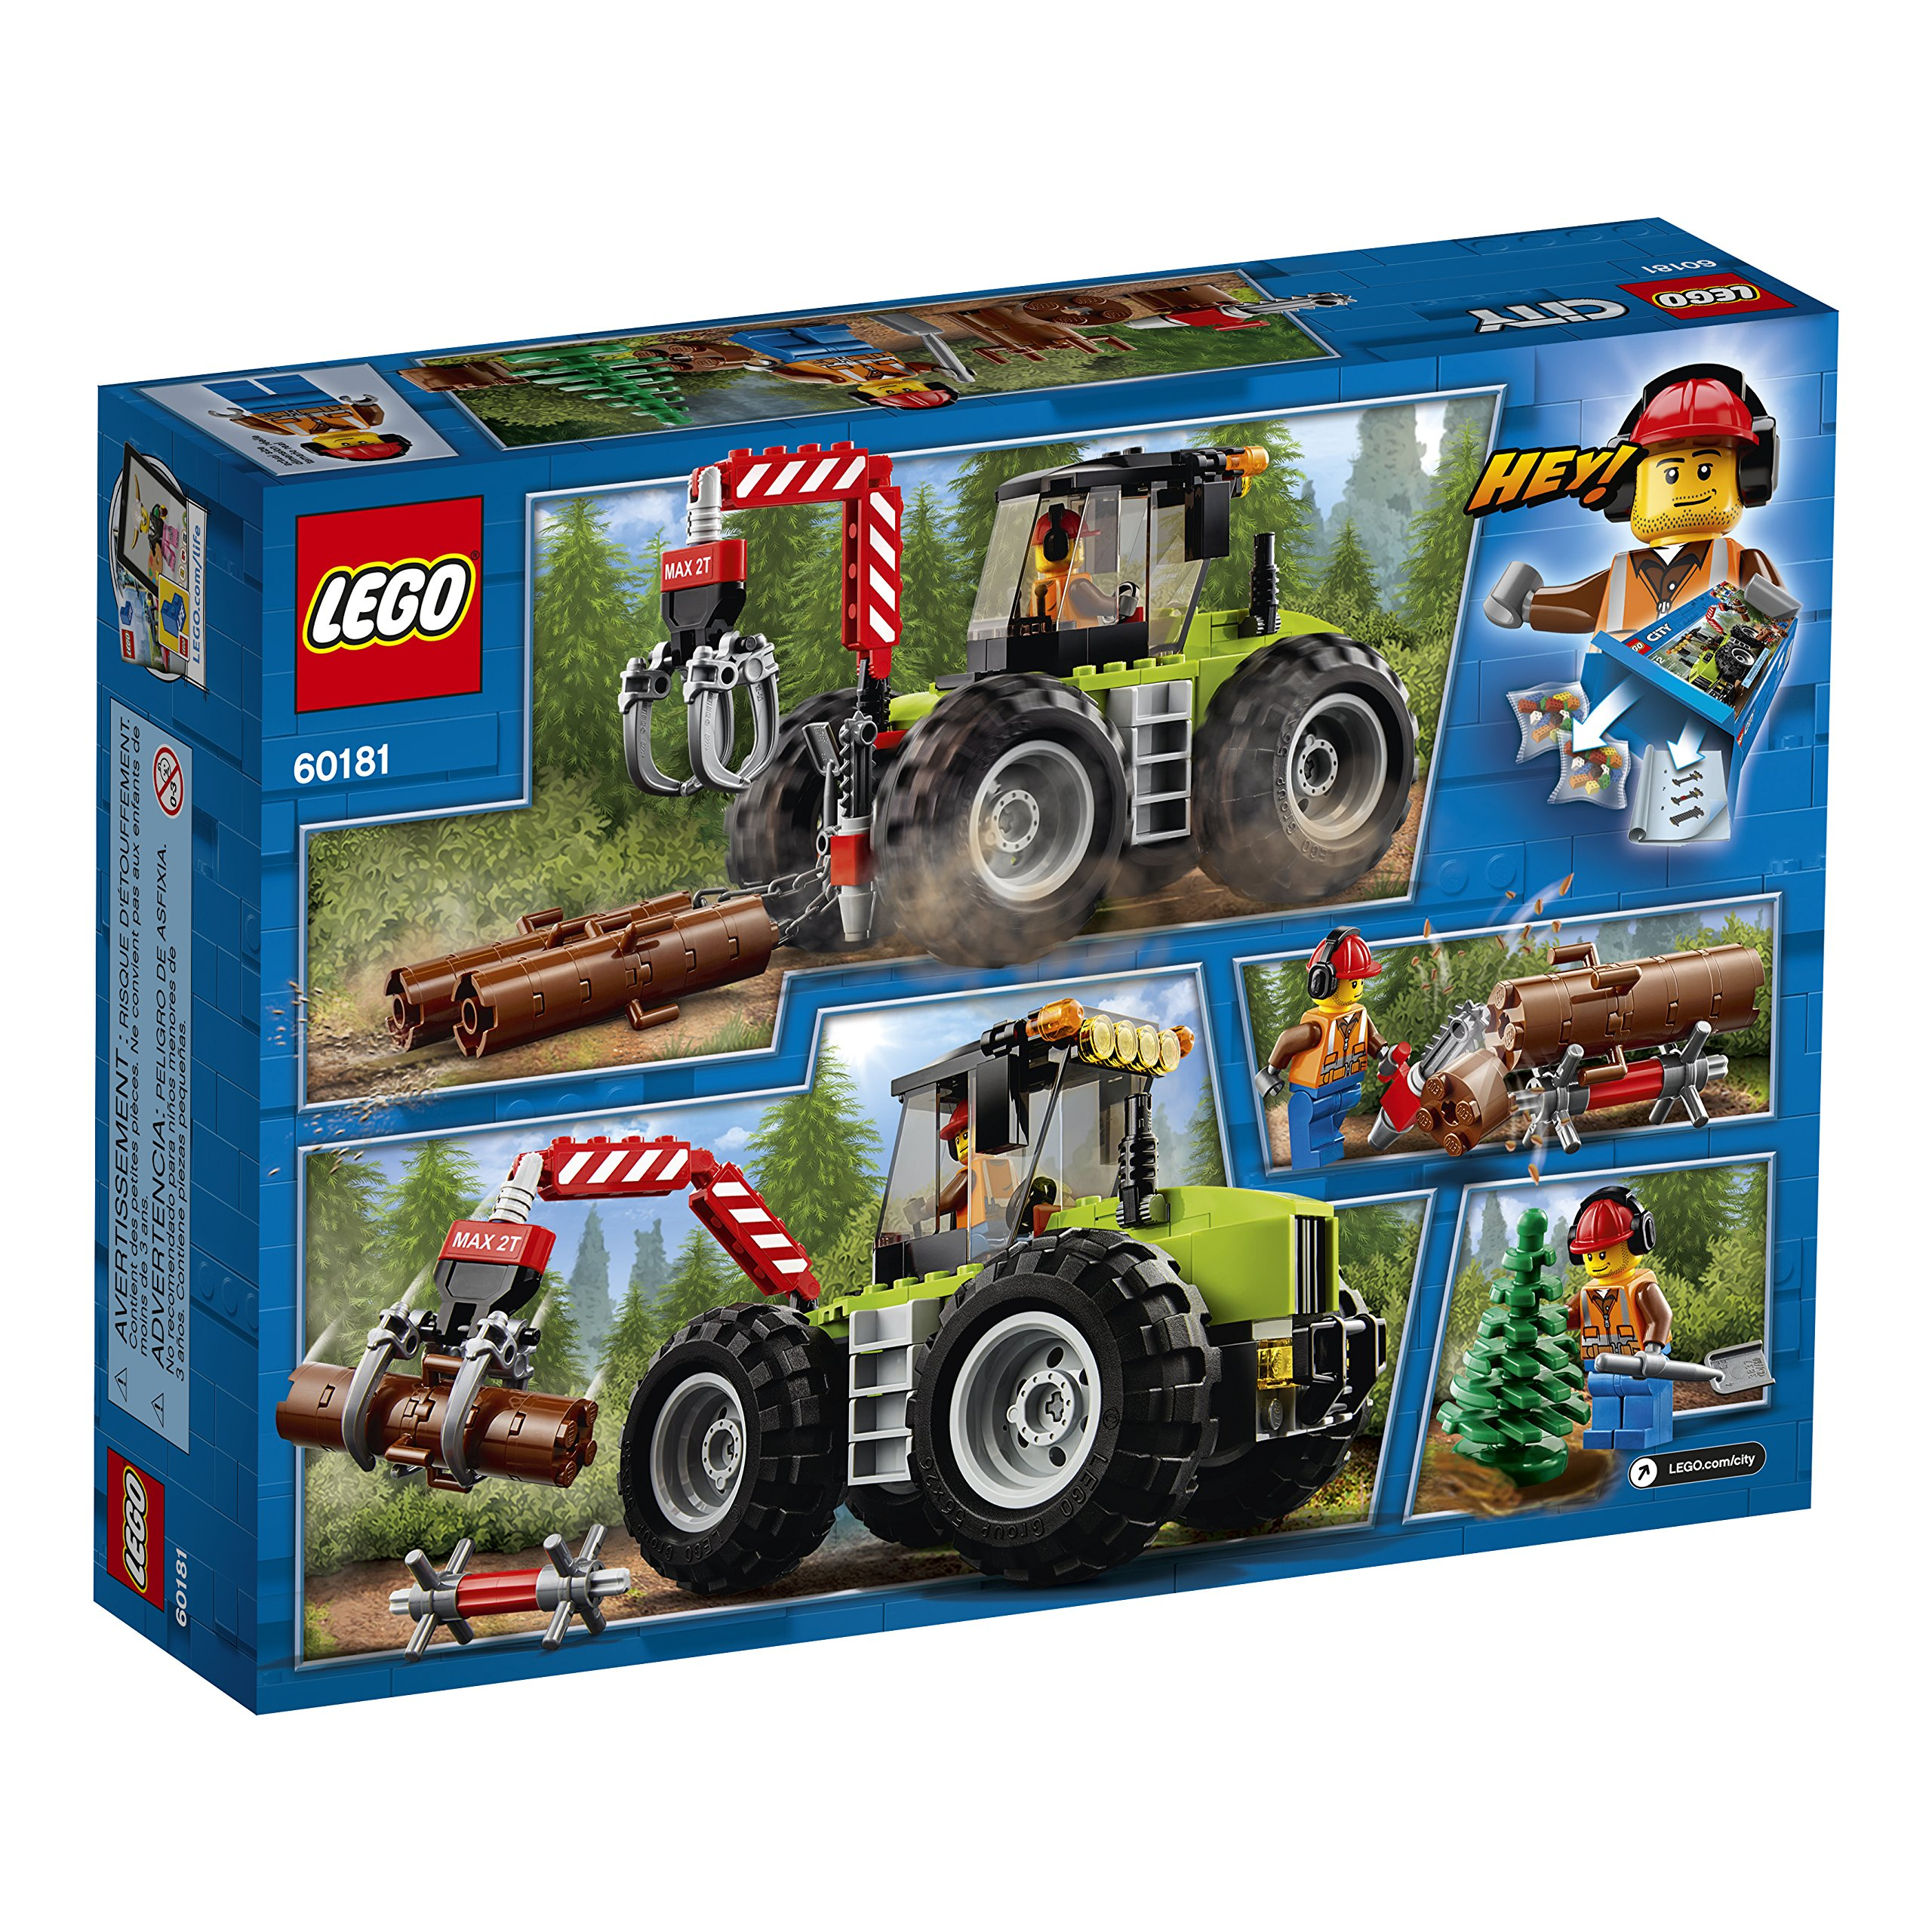 LEGO City Forest Tractor 60181 Building Kit (174 Piece) by LEGO (Image #5)